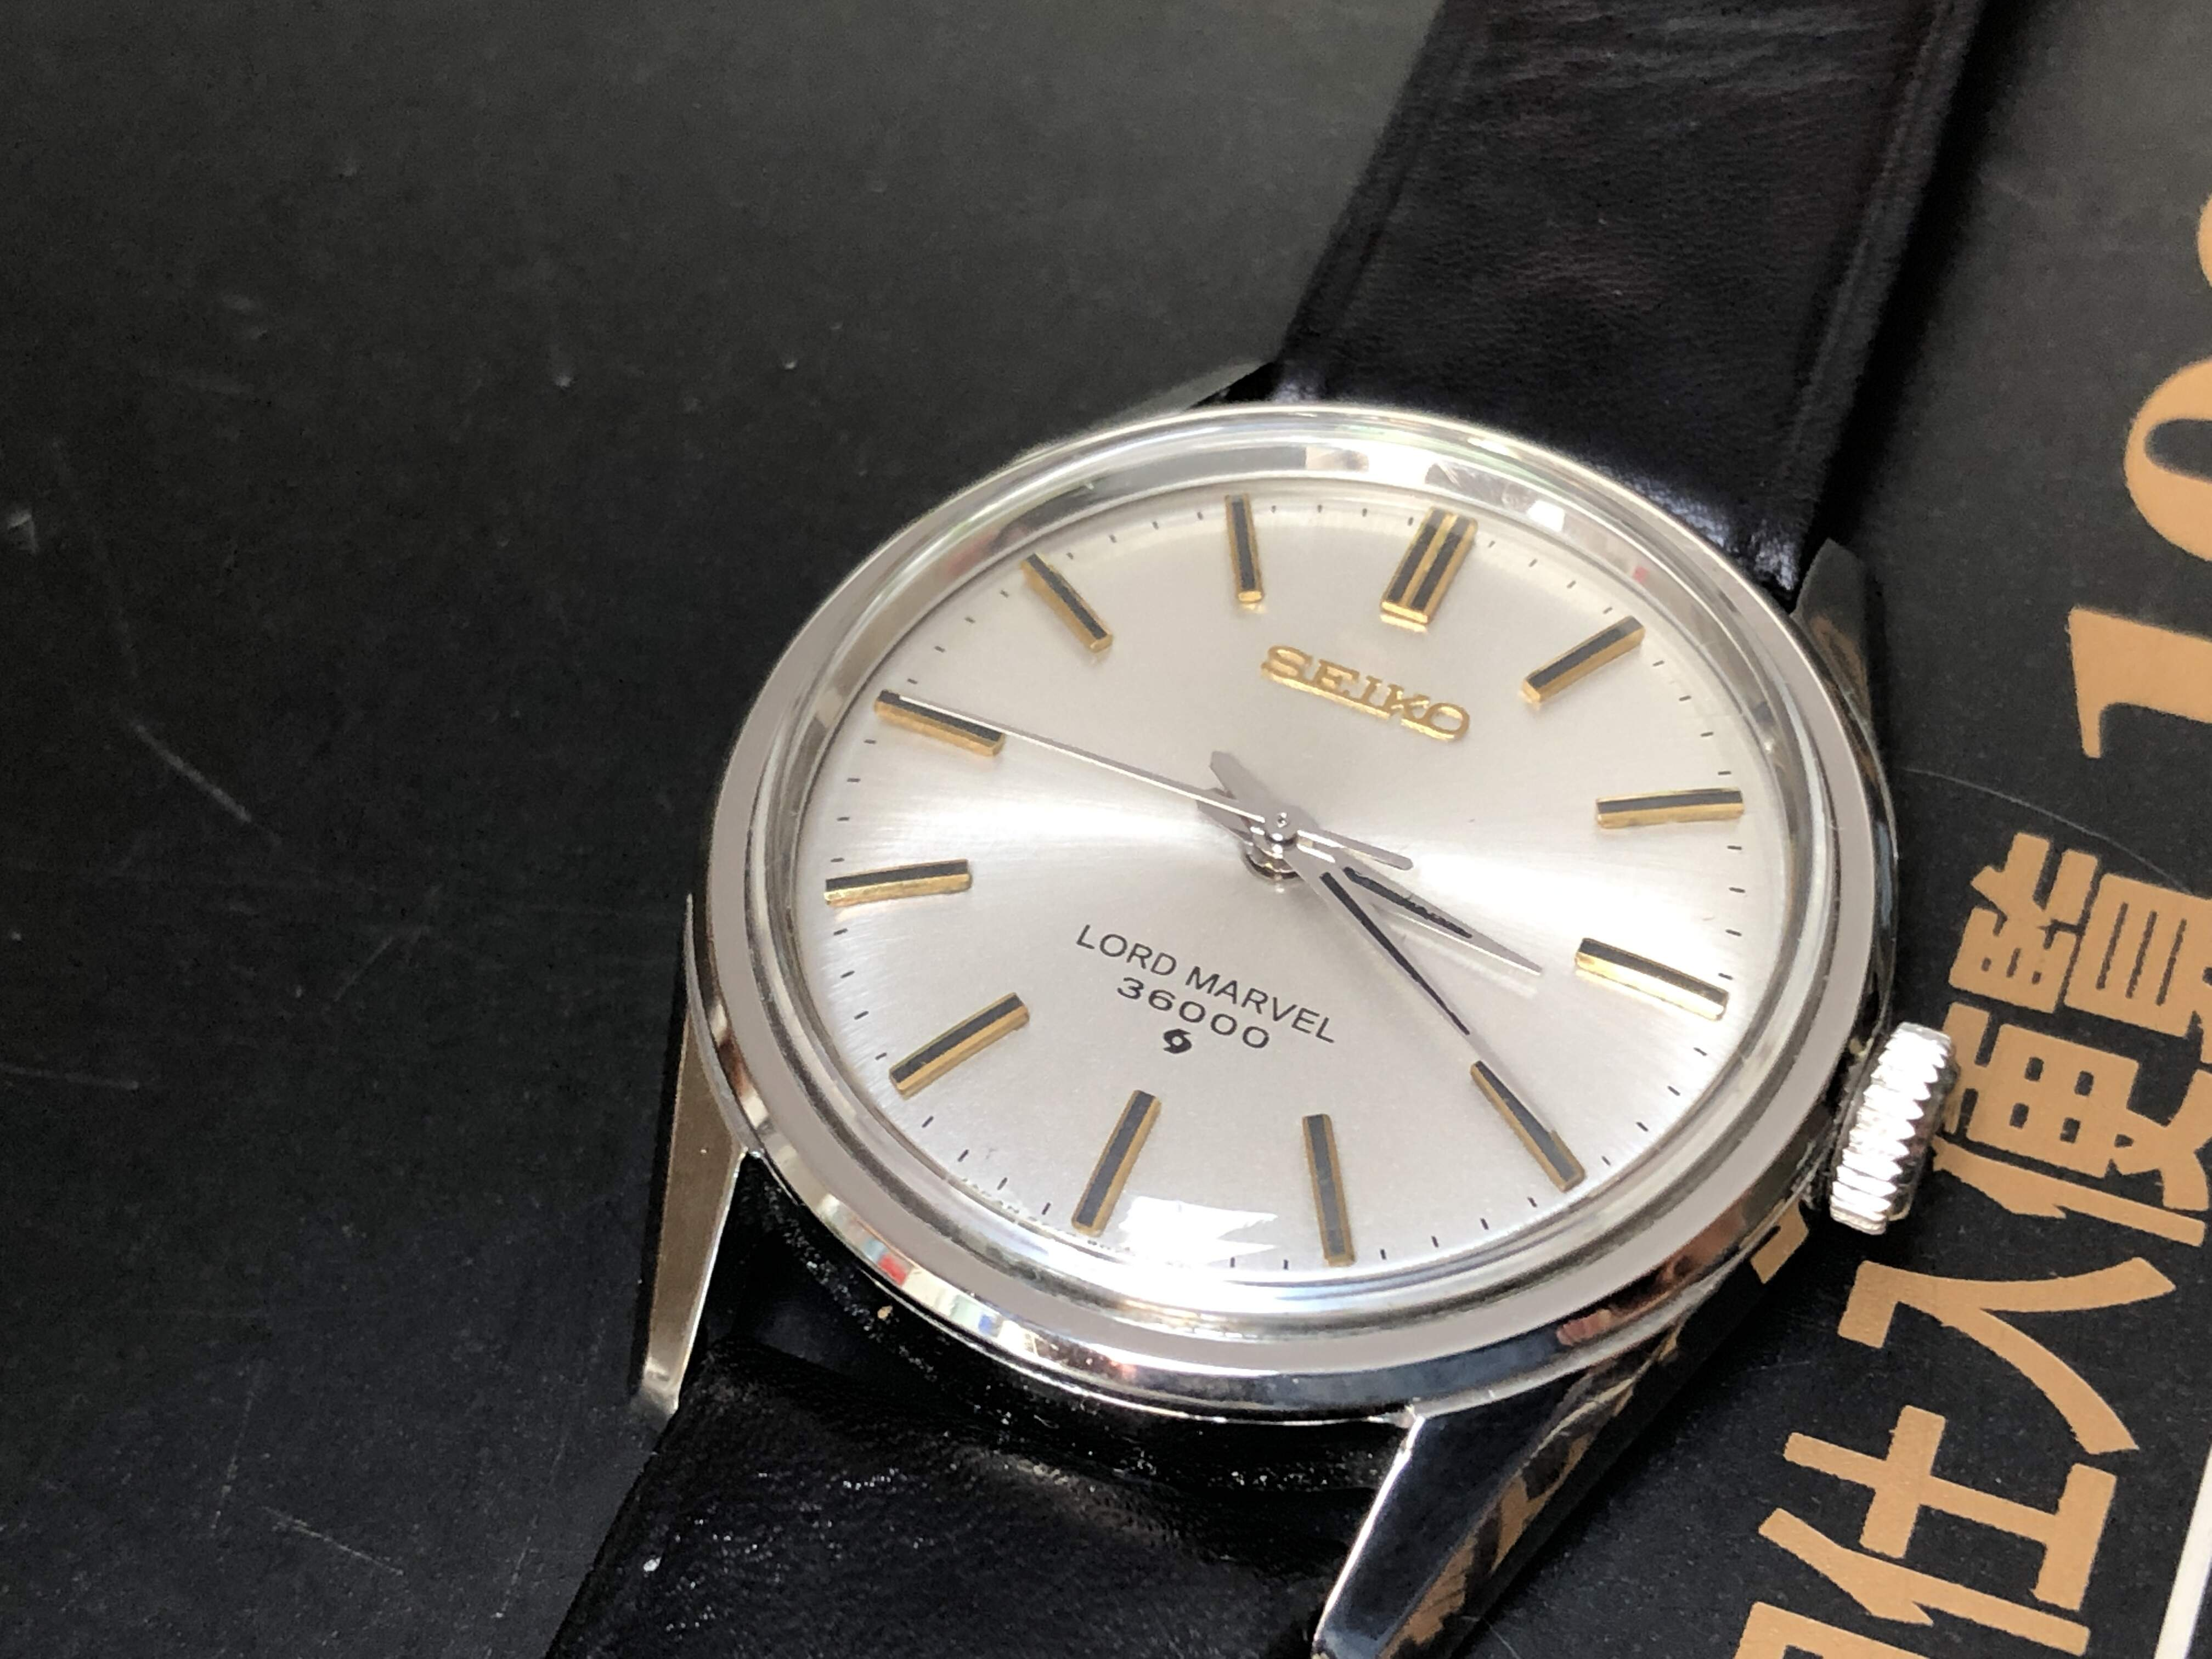 Seiko Lord Marvel 5740-8000 LM36-040 (Sold)